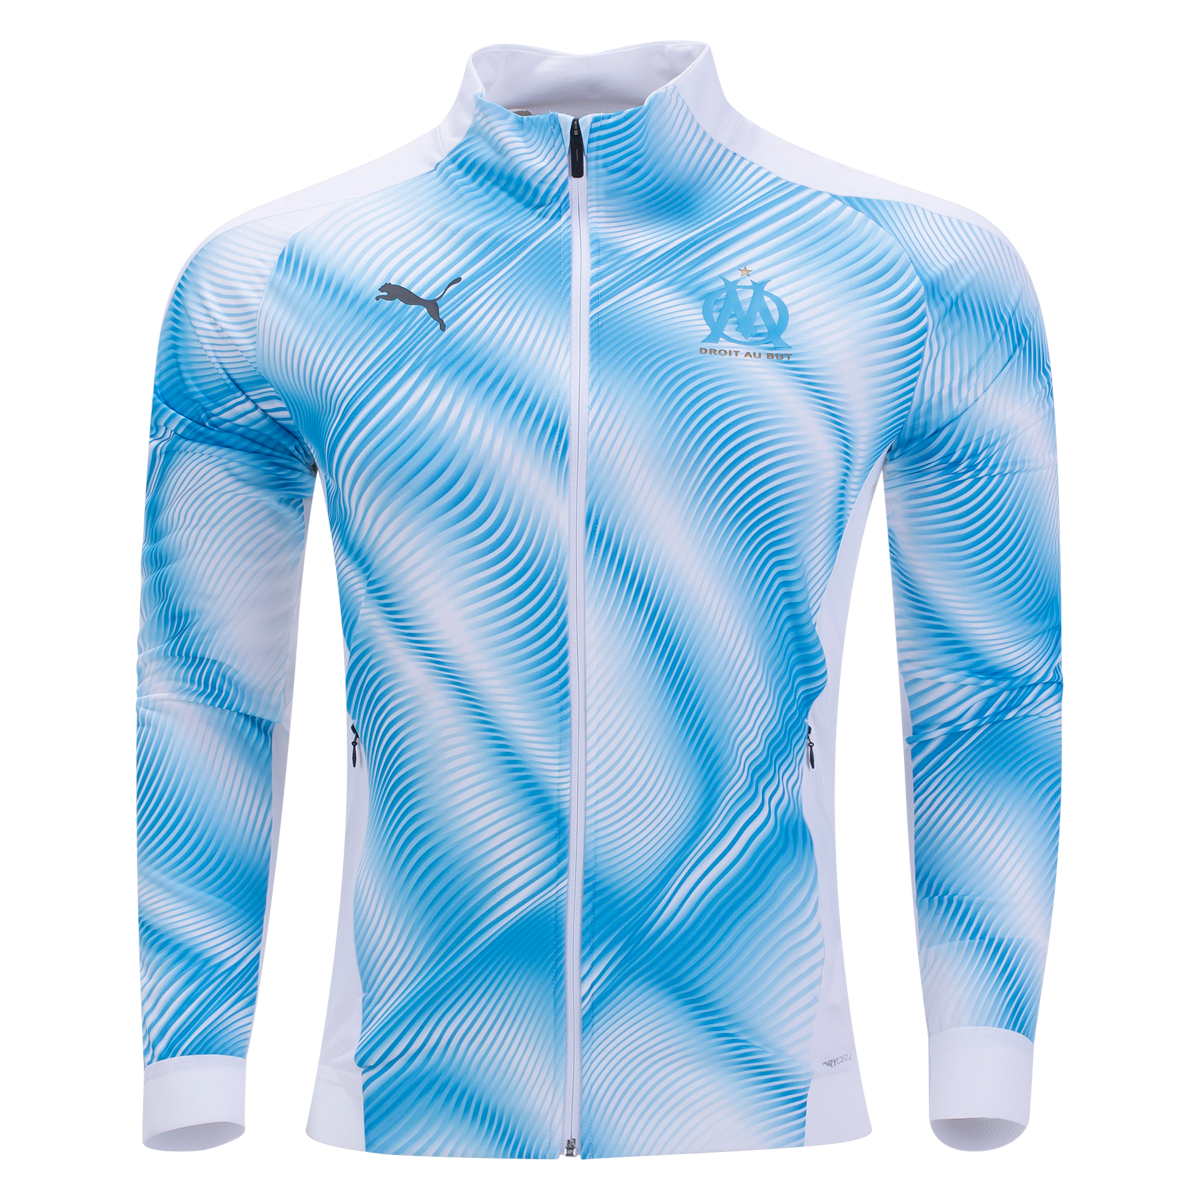 PUMA Marseilles Stadium Jacket 19/202xl in 2020 Jackets